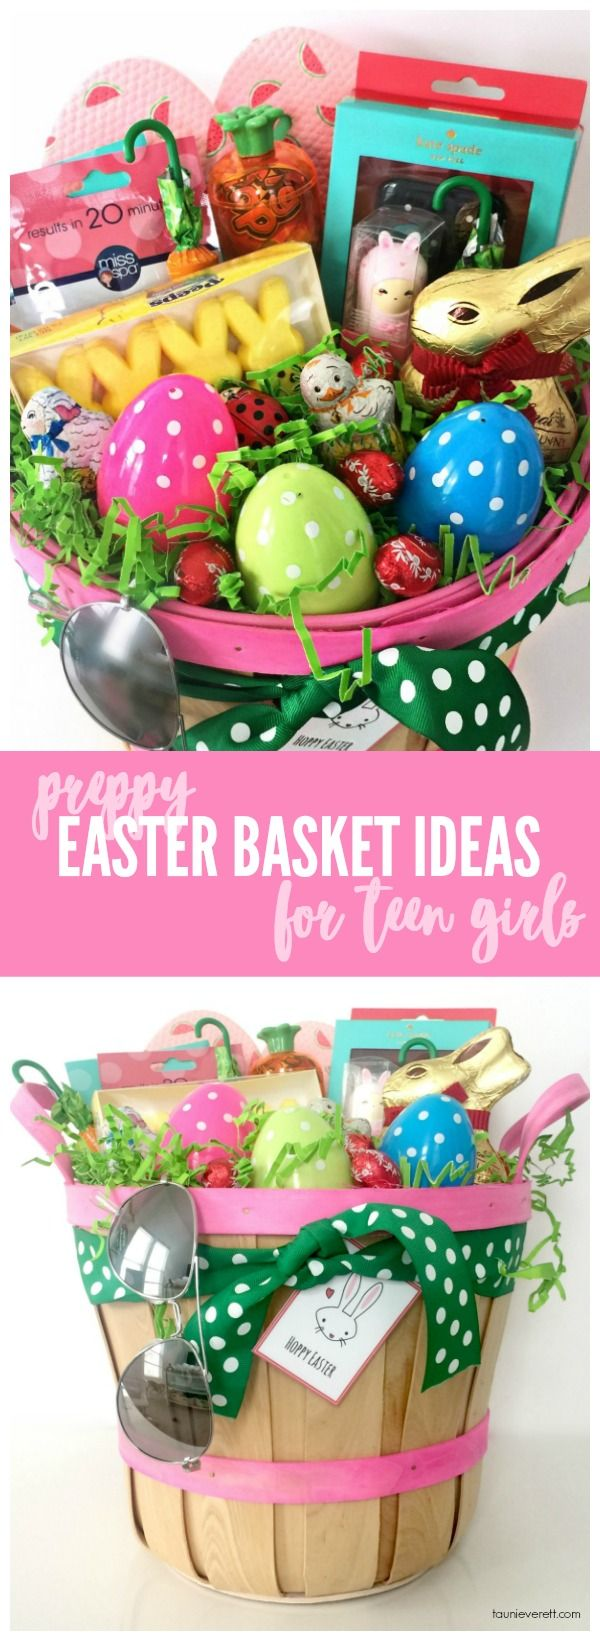 346 best easter crafts diy images on pinterest bunnies easter basket ideas for teen girls negle Choice Image